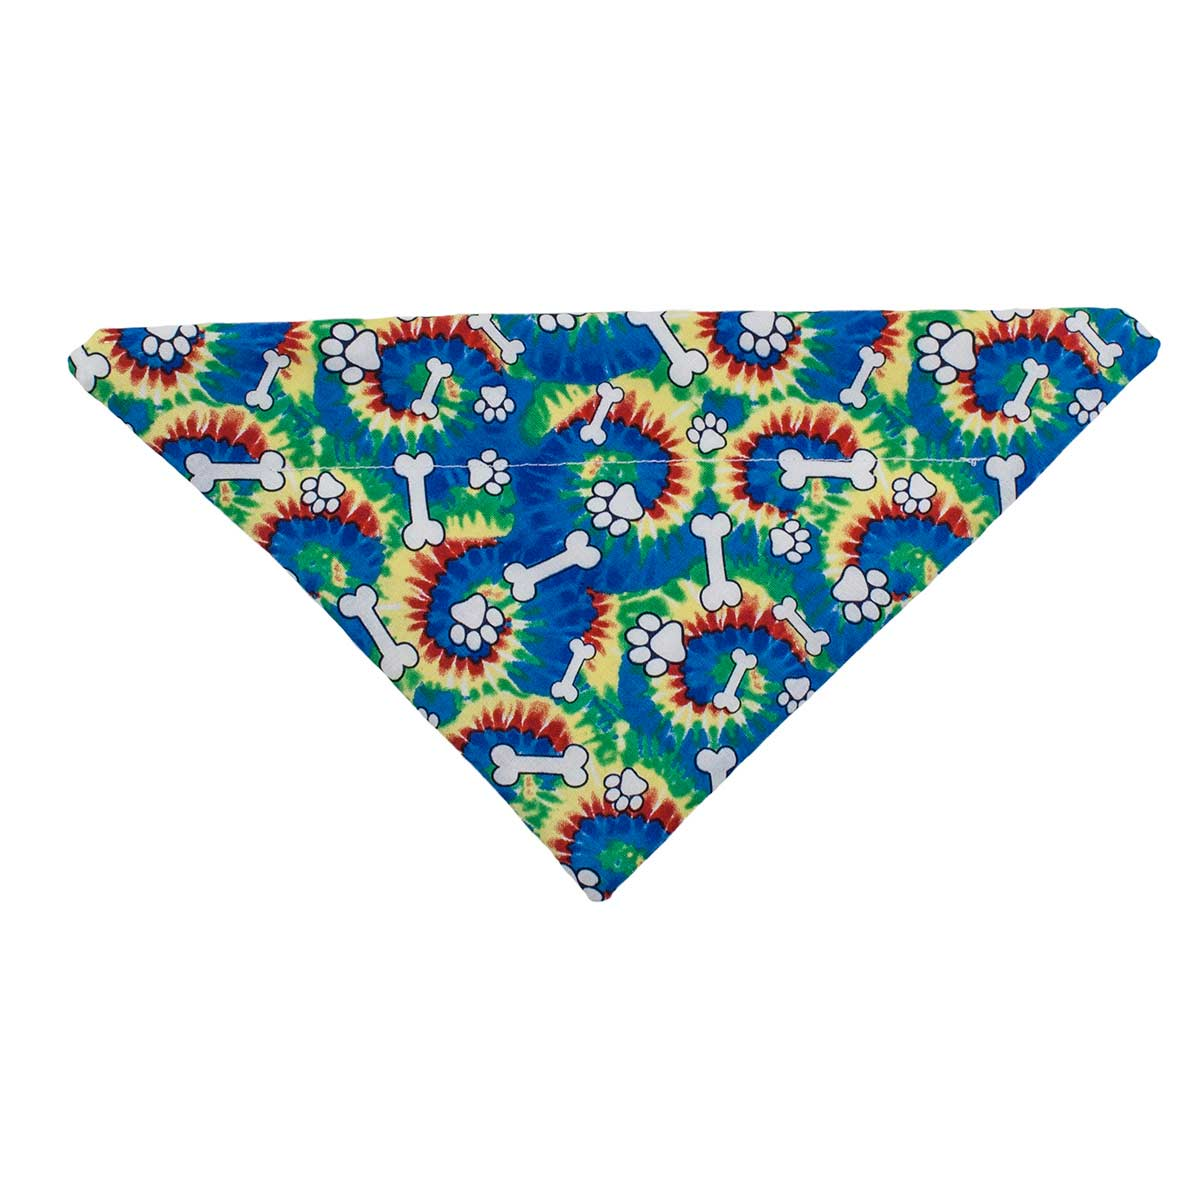 Small Tie Dye Bones and Paws 9.75 inch Dog Collar Bandana